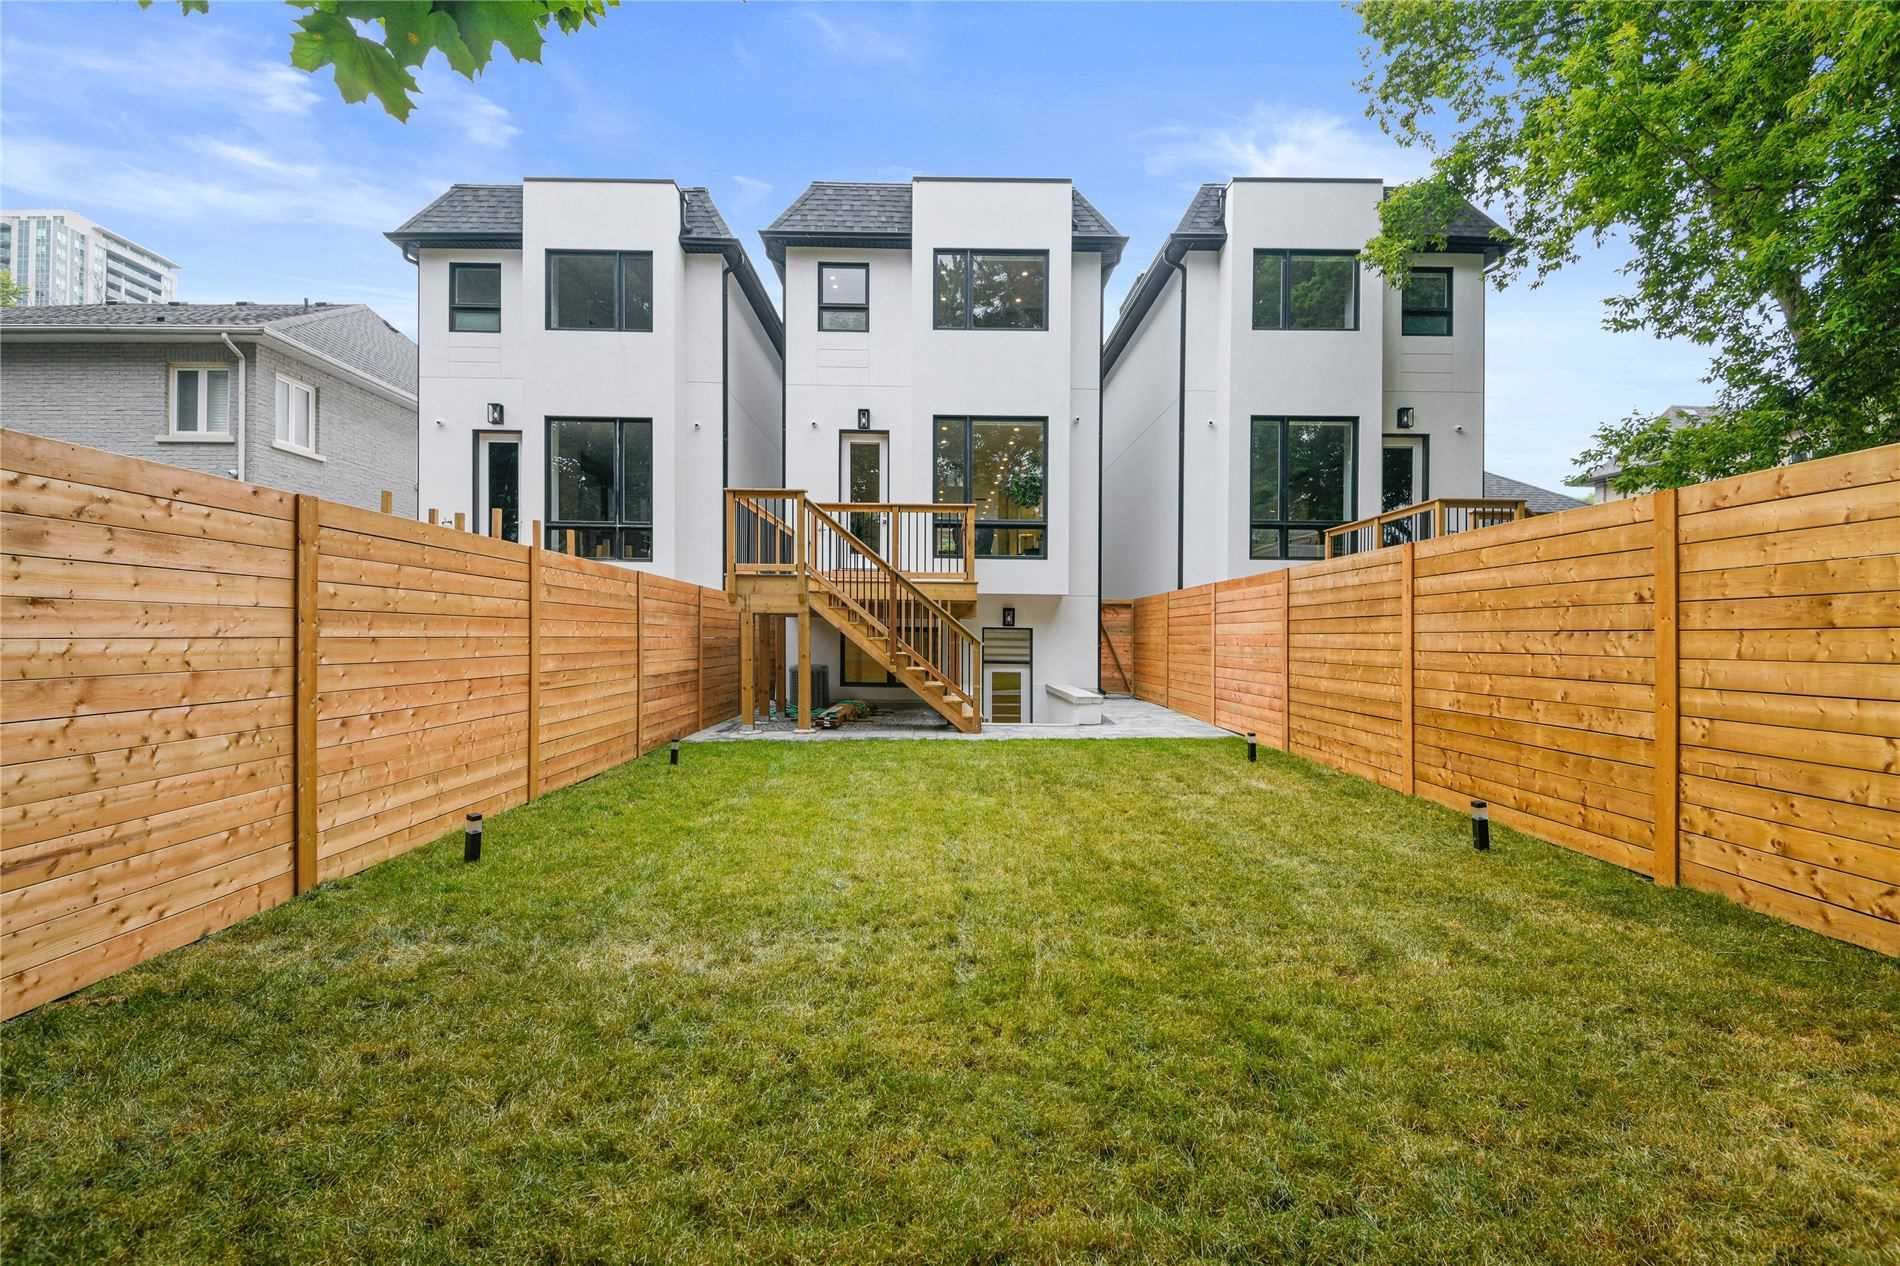 30 Florence Ave, Toronto, Ontario M2N1E9, 4 Bedrooms Bedrooms, 8 Rooms Rooms,5 BathroomsBathrooms,Detached,For Sale,Florence,C5344714